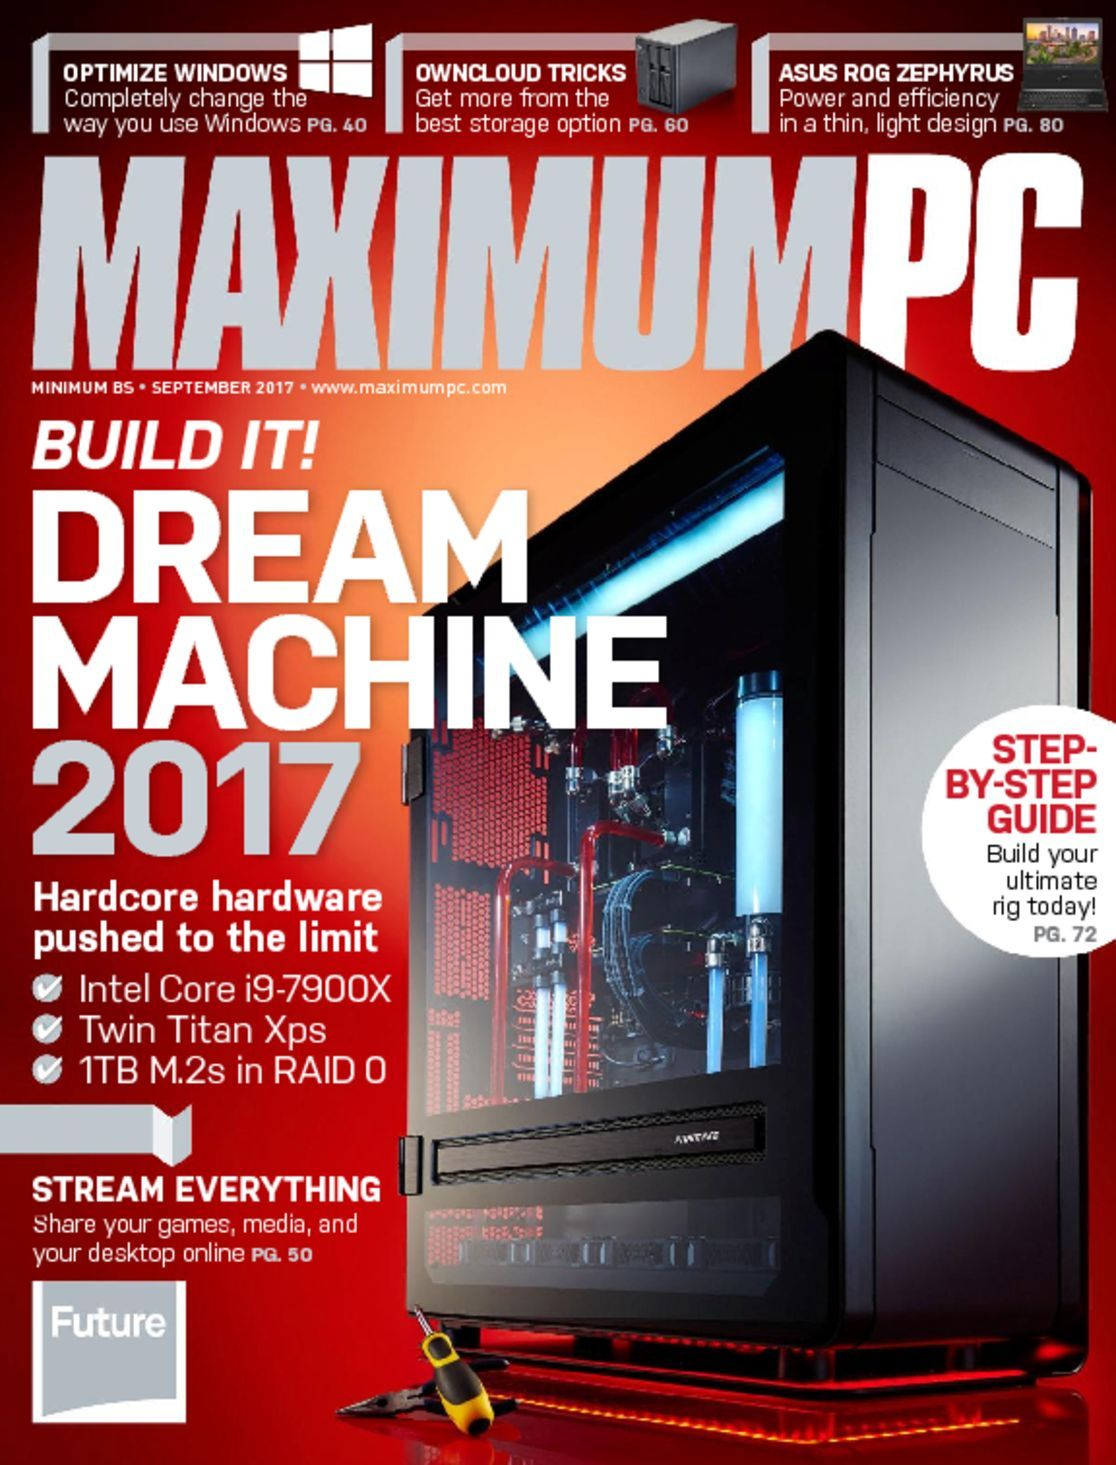 Maximum PC Magazine  Savvy PC - DiscountMags.com